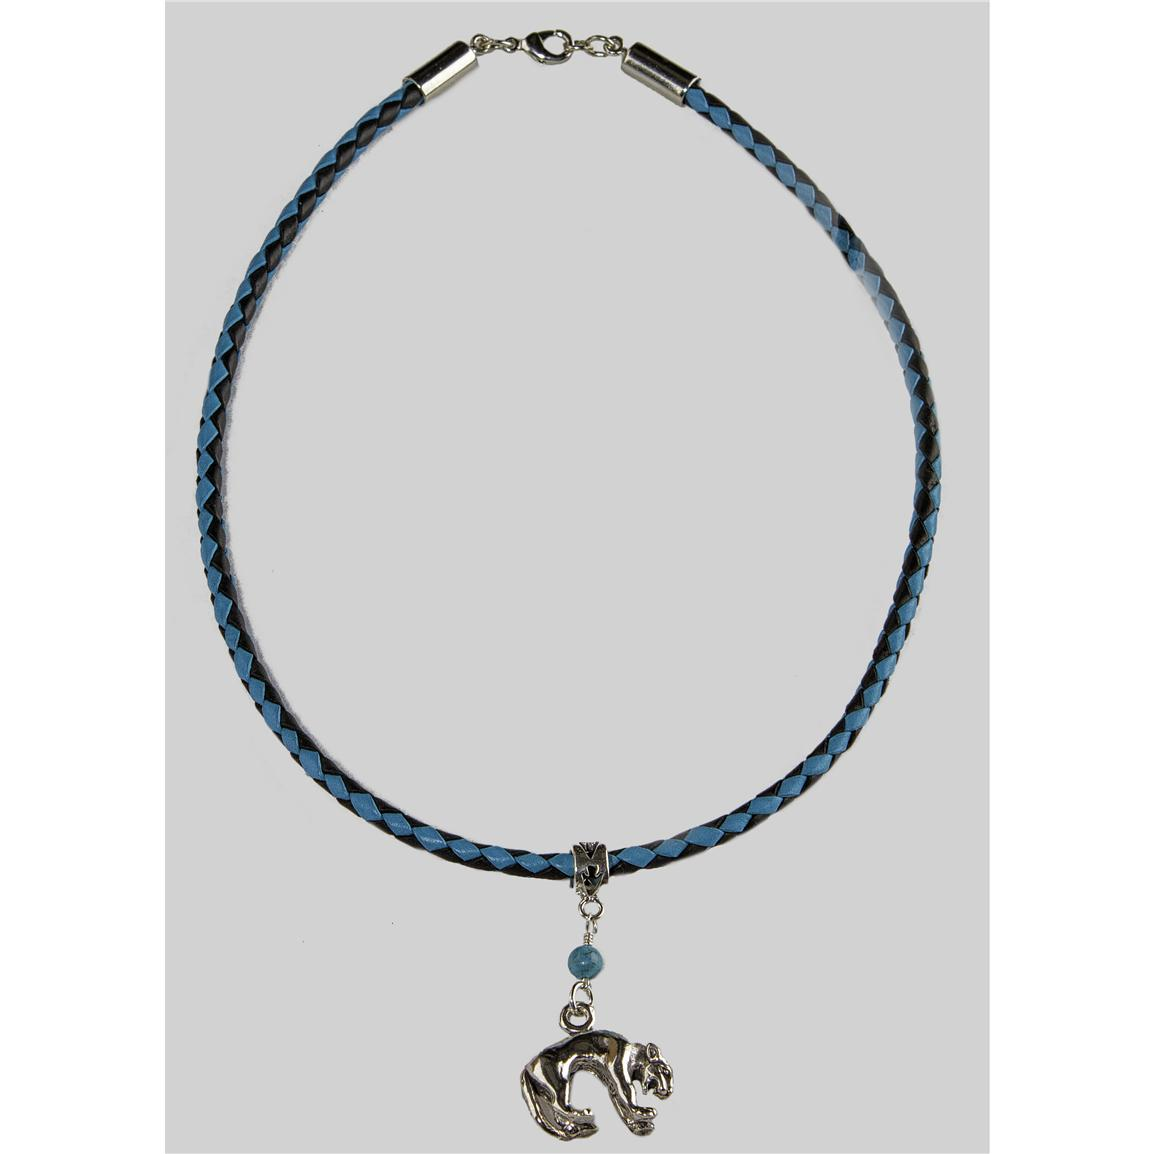 Laura Ingalls Designs™ Mountain Lion on Turquoise and Saddle Braided Necklace